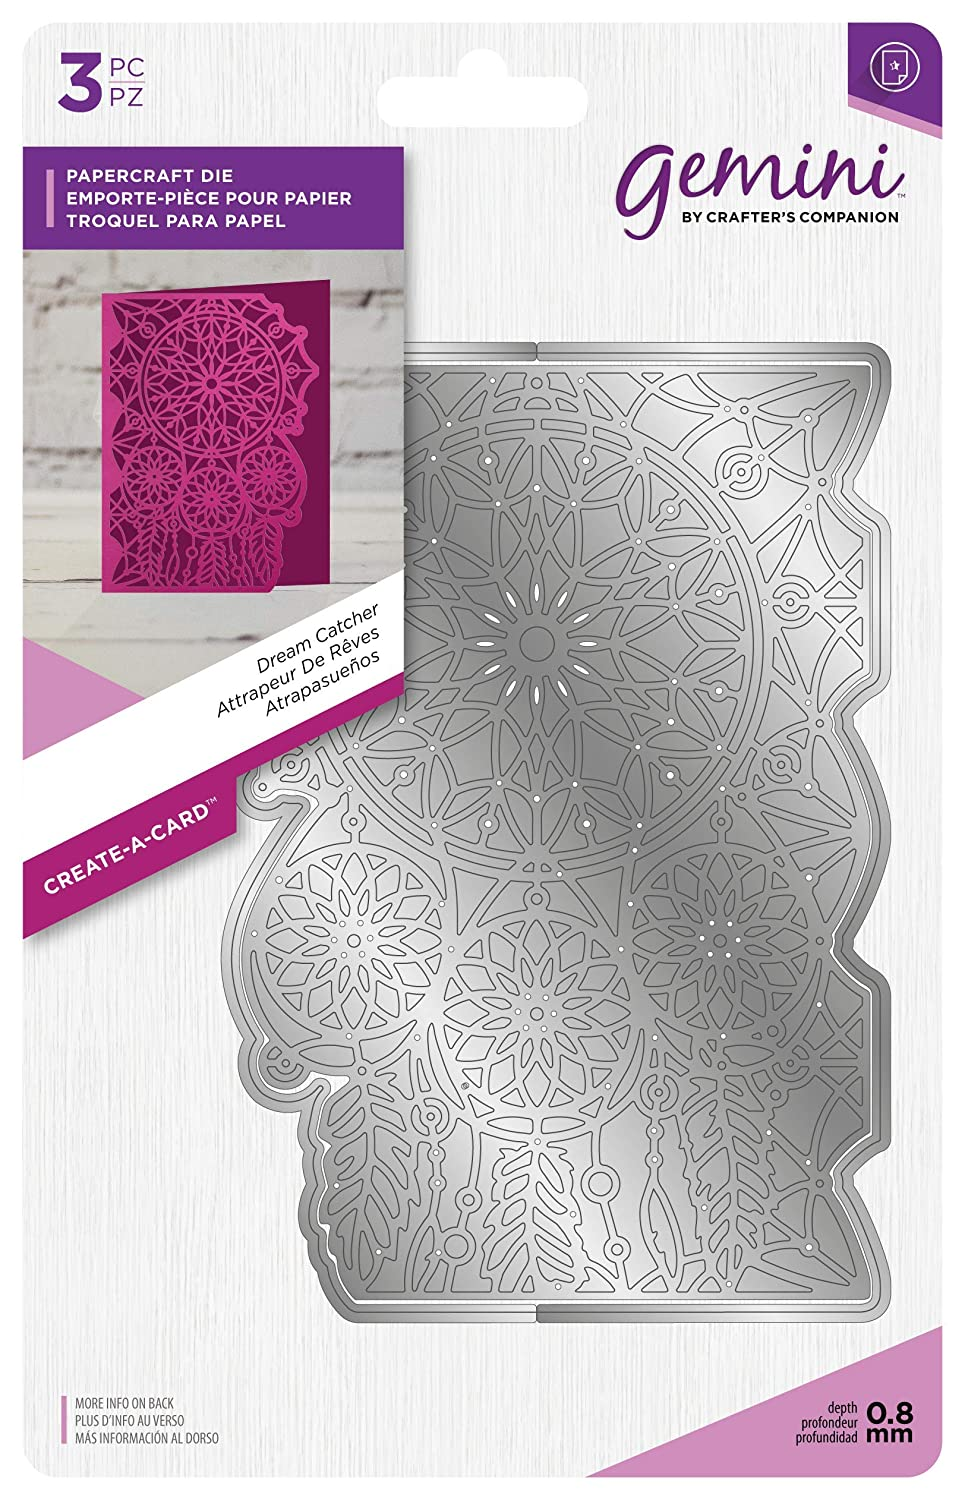 Gemini Die-Create a Card-Dream Catcher, Silver, Various Crafter' s Companion GEM-MD-CAD-DC